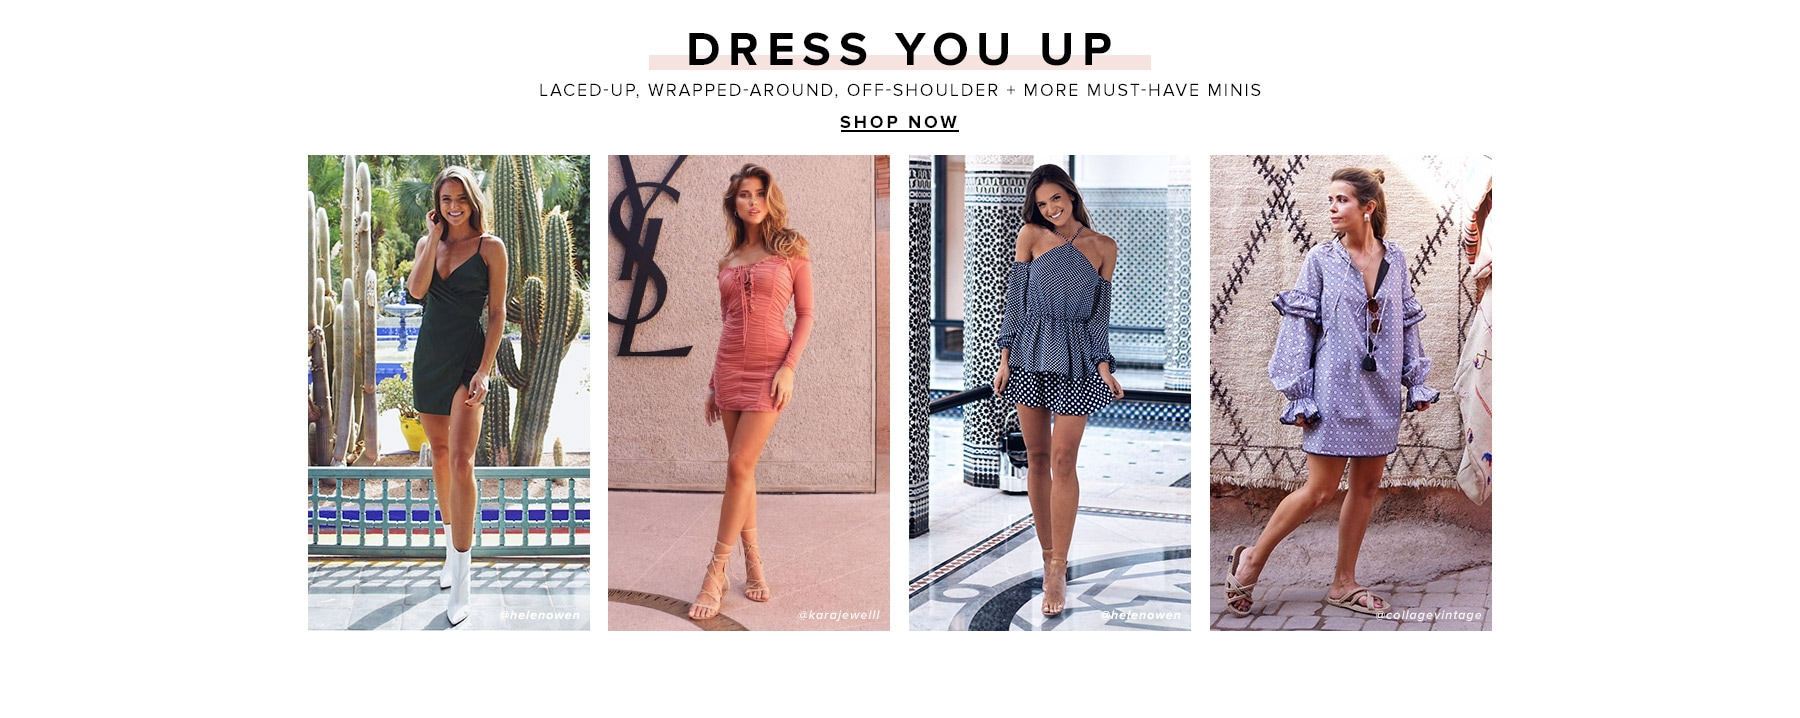 Dress You Up. Laced-up, wrapped-around, off-shoulder + more must-have minis. Shop Now.